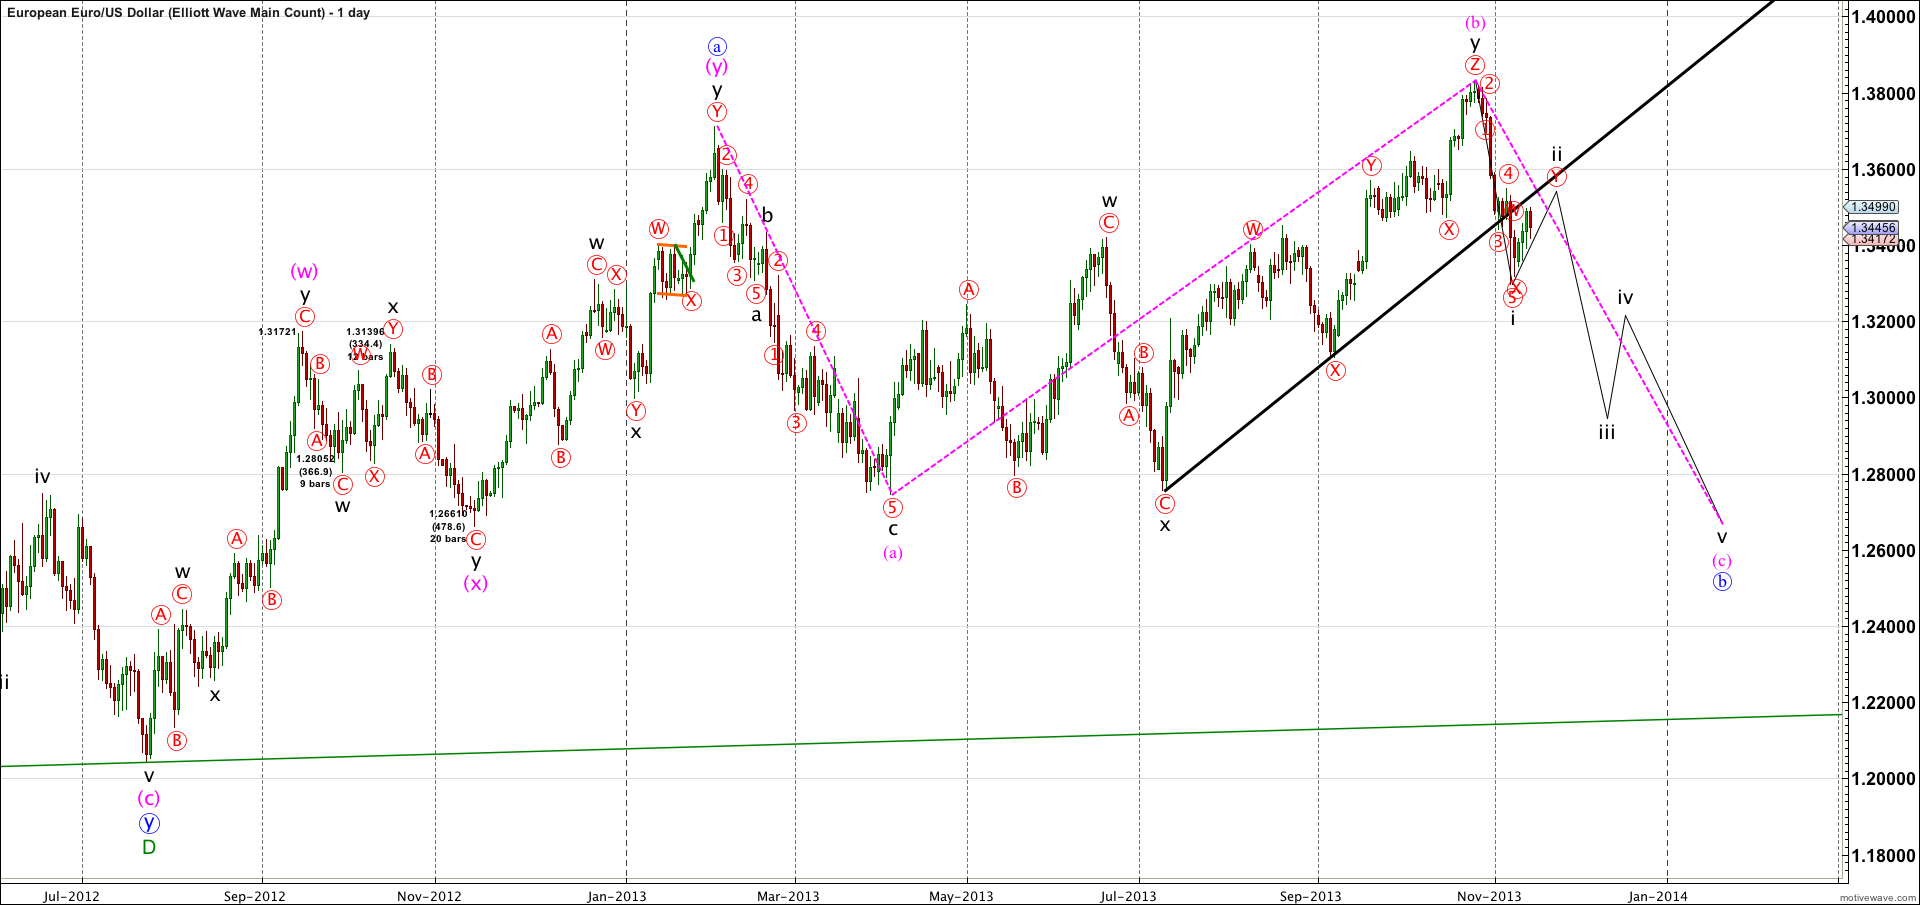 EURUSD-Elliott-Wave-Main-Count-Nov-14-0918-AM-1-day